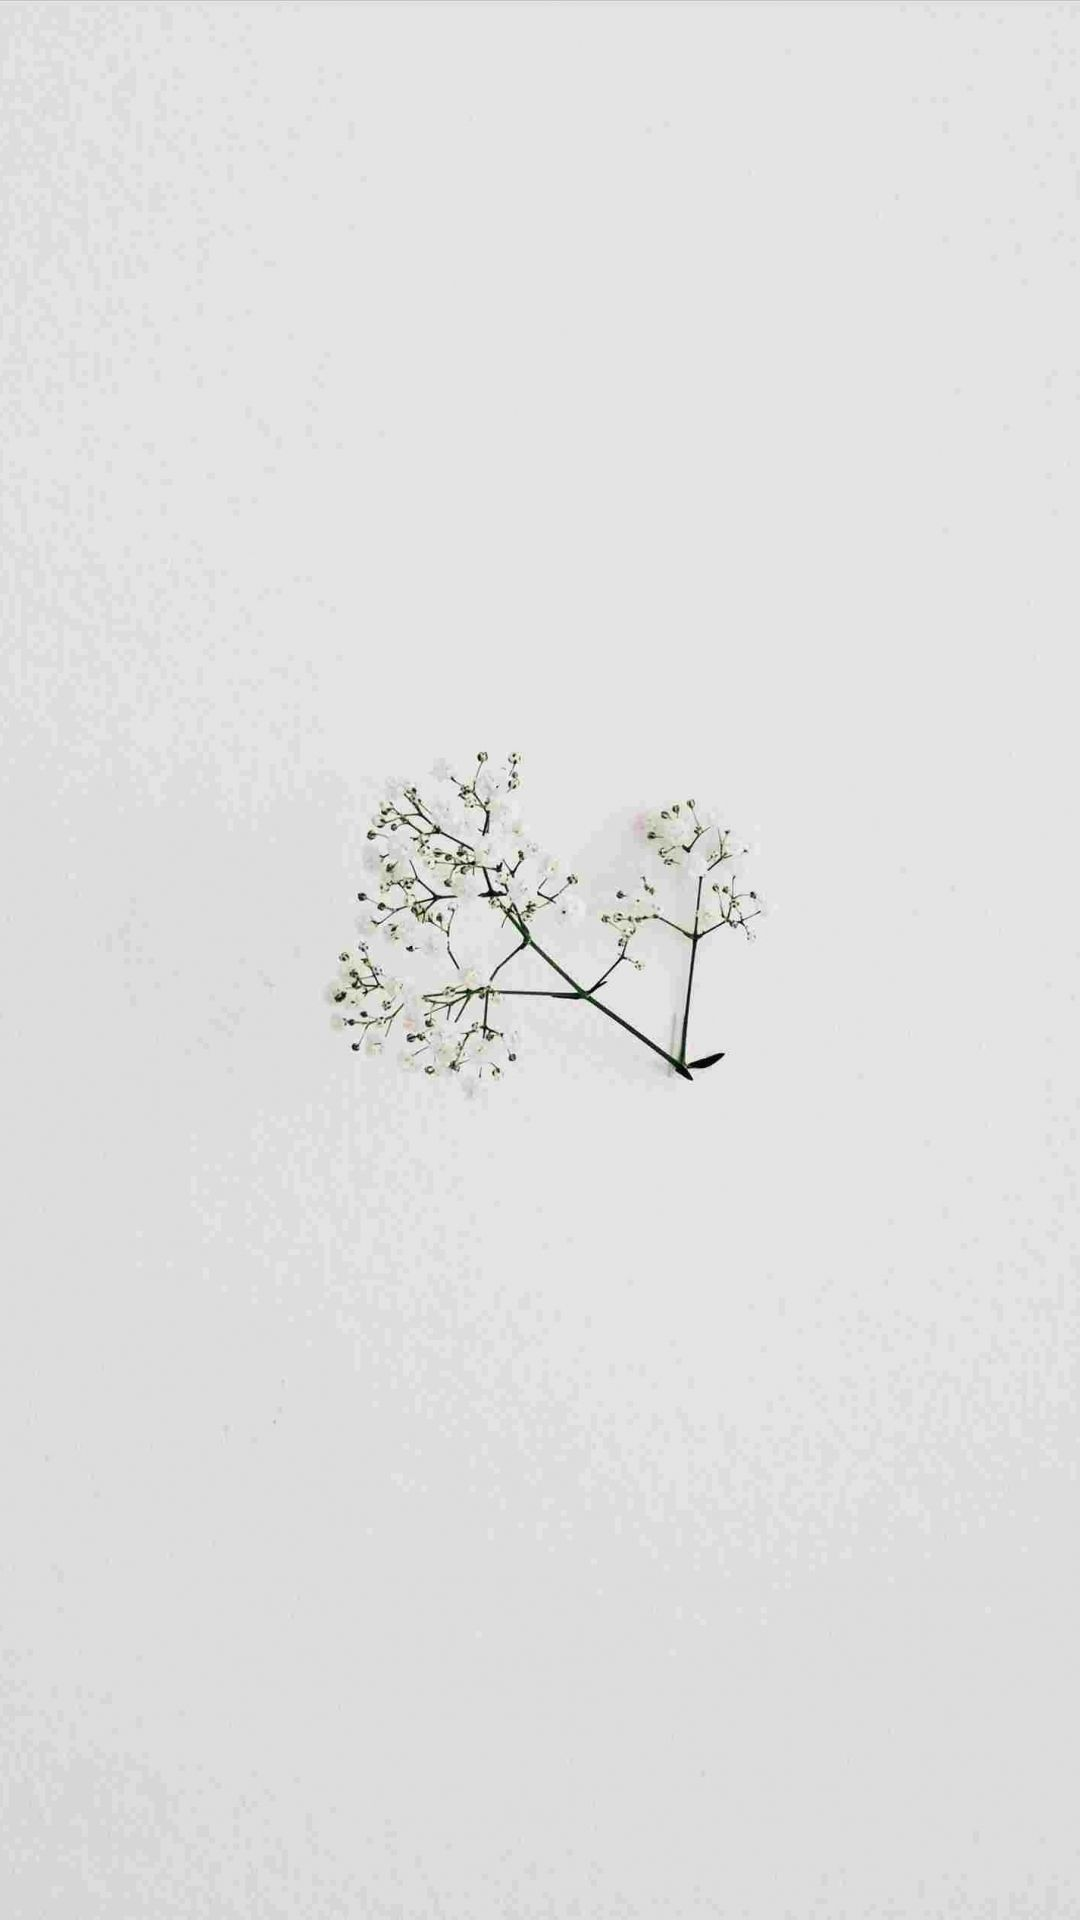 Aesthetic Minimalist White Wallpaper Iphone | Iphone ...